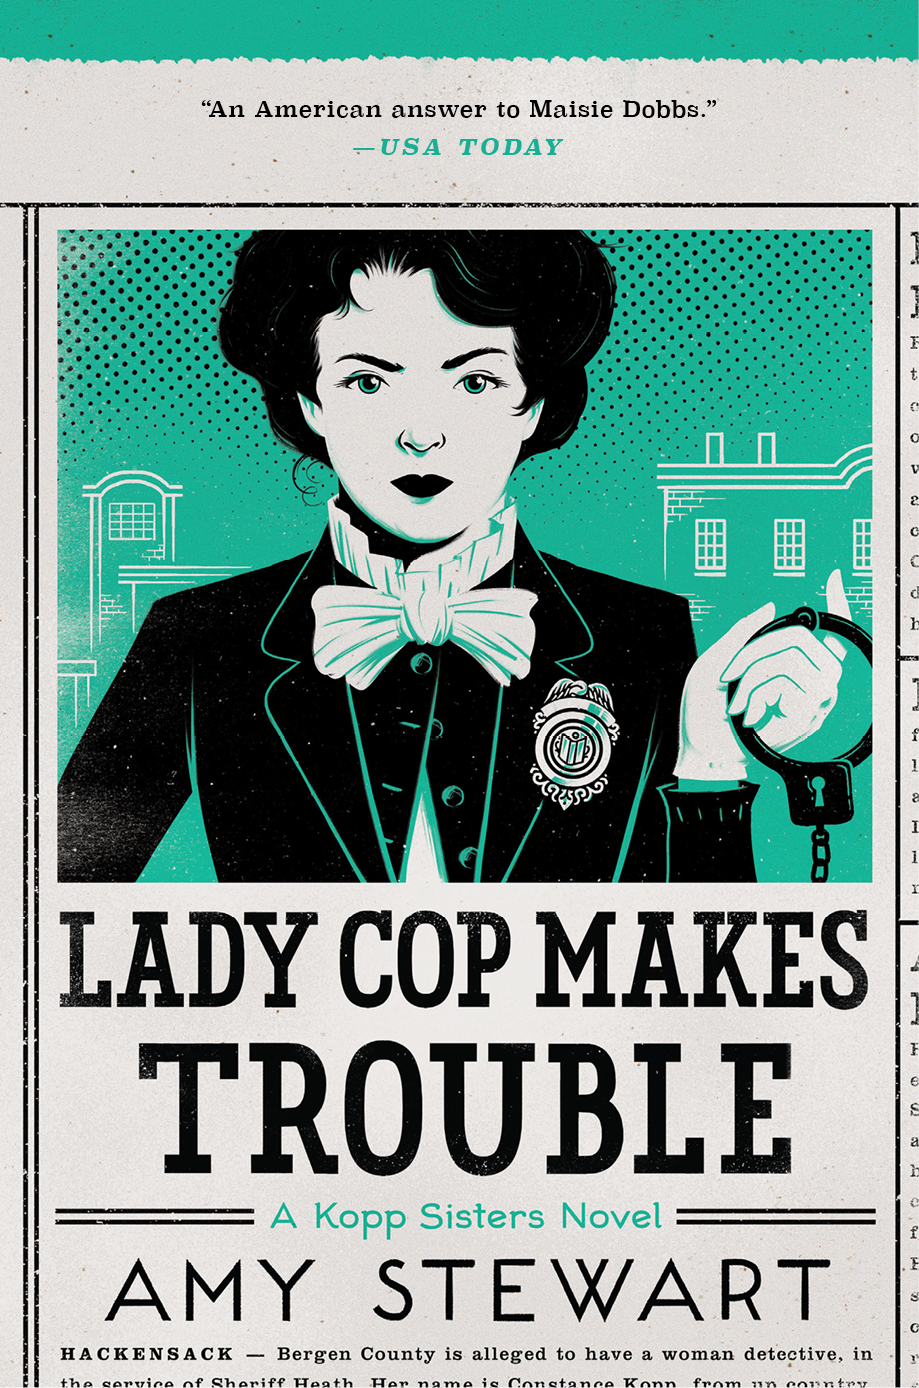 Stewart_lady-cop-makes-trouble_hres